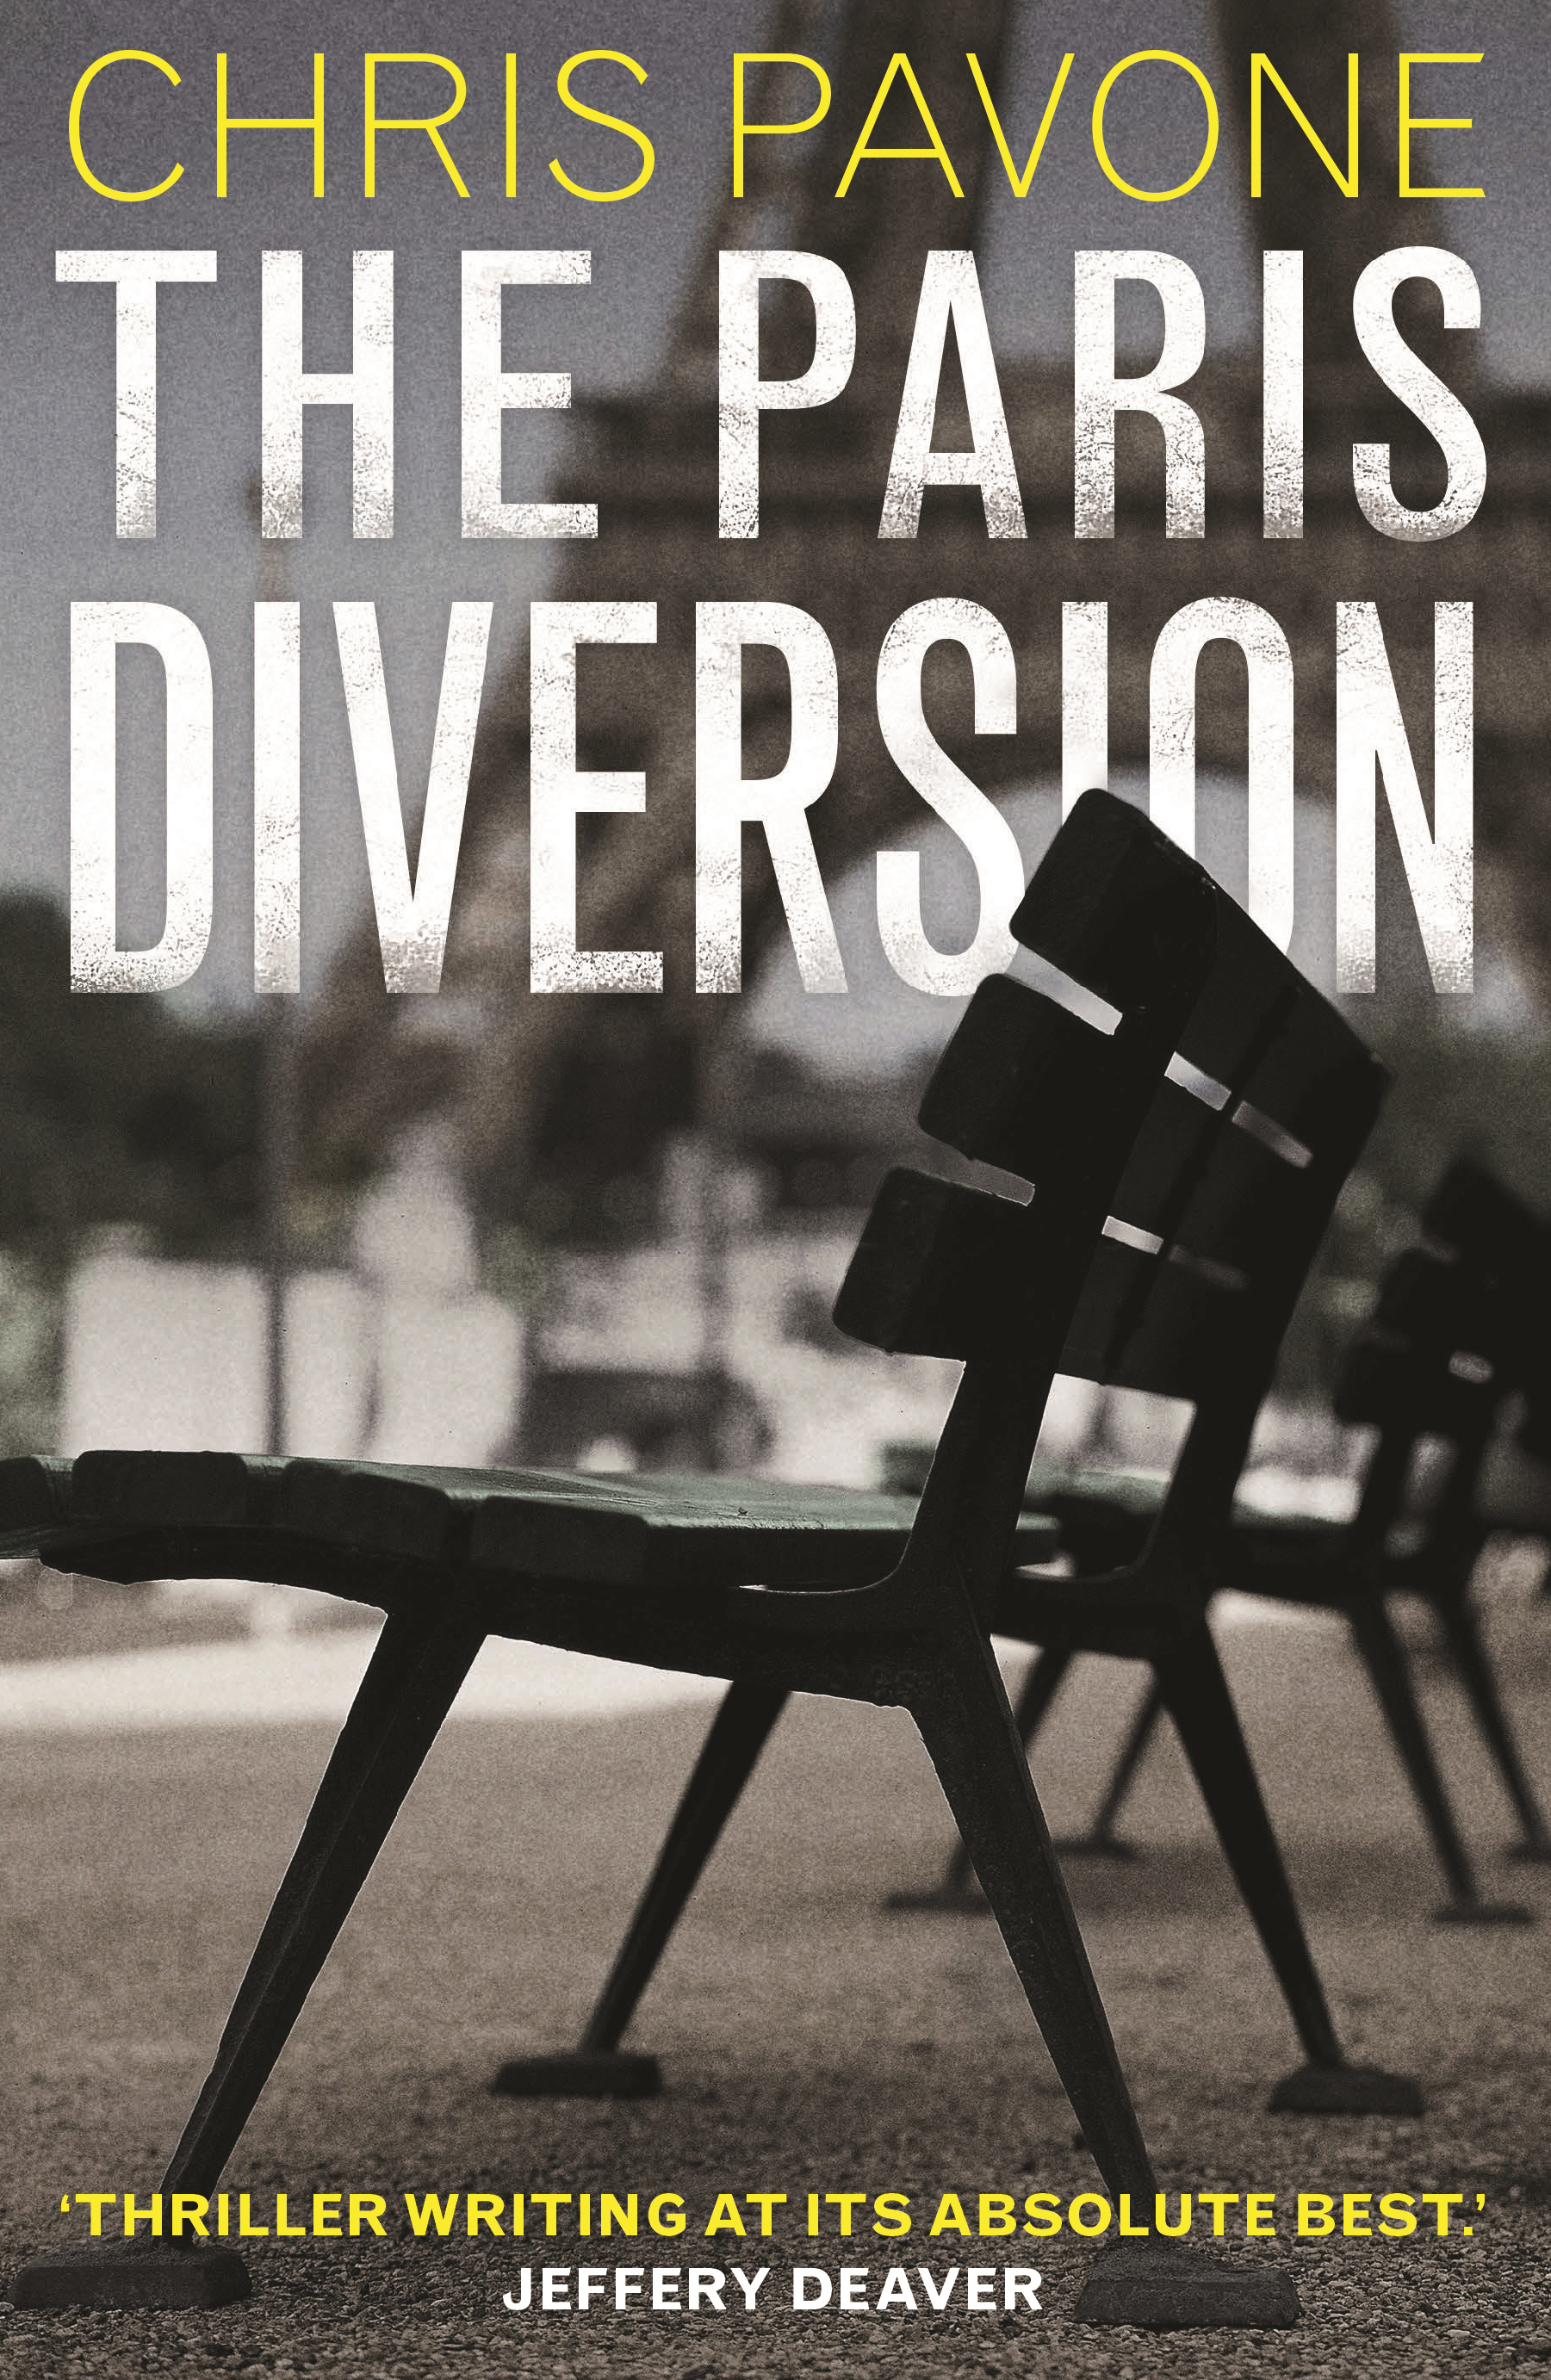 FORECAST FRIDAY: THE PARIS DIVERSION by Chris Pavone (Faber, $A29.99).  Due out June 2019  (7 May 2019 in the UK)